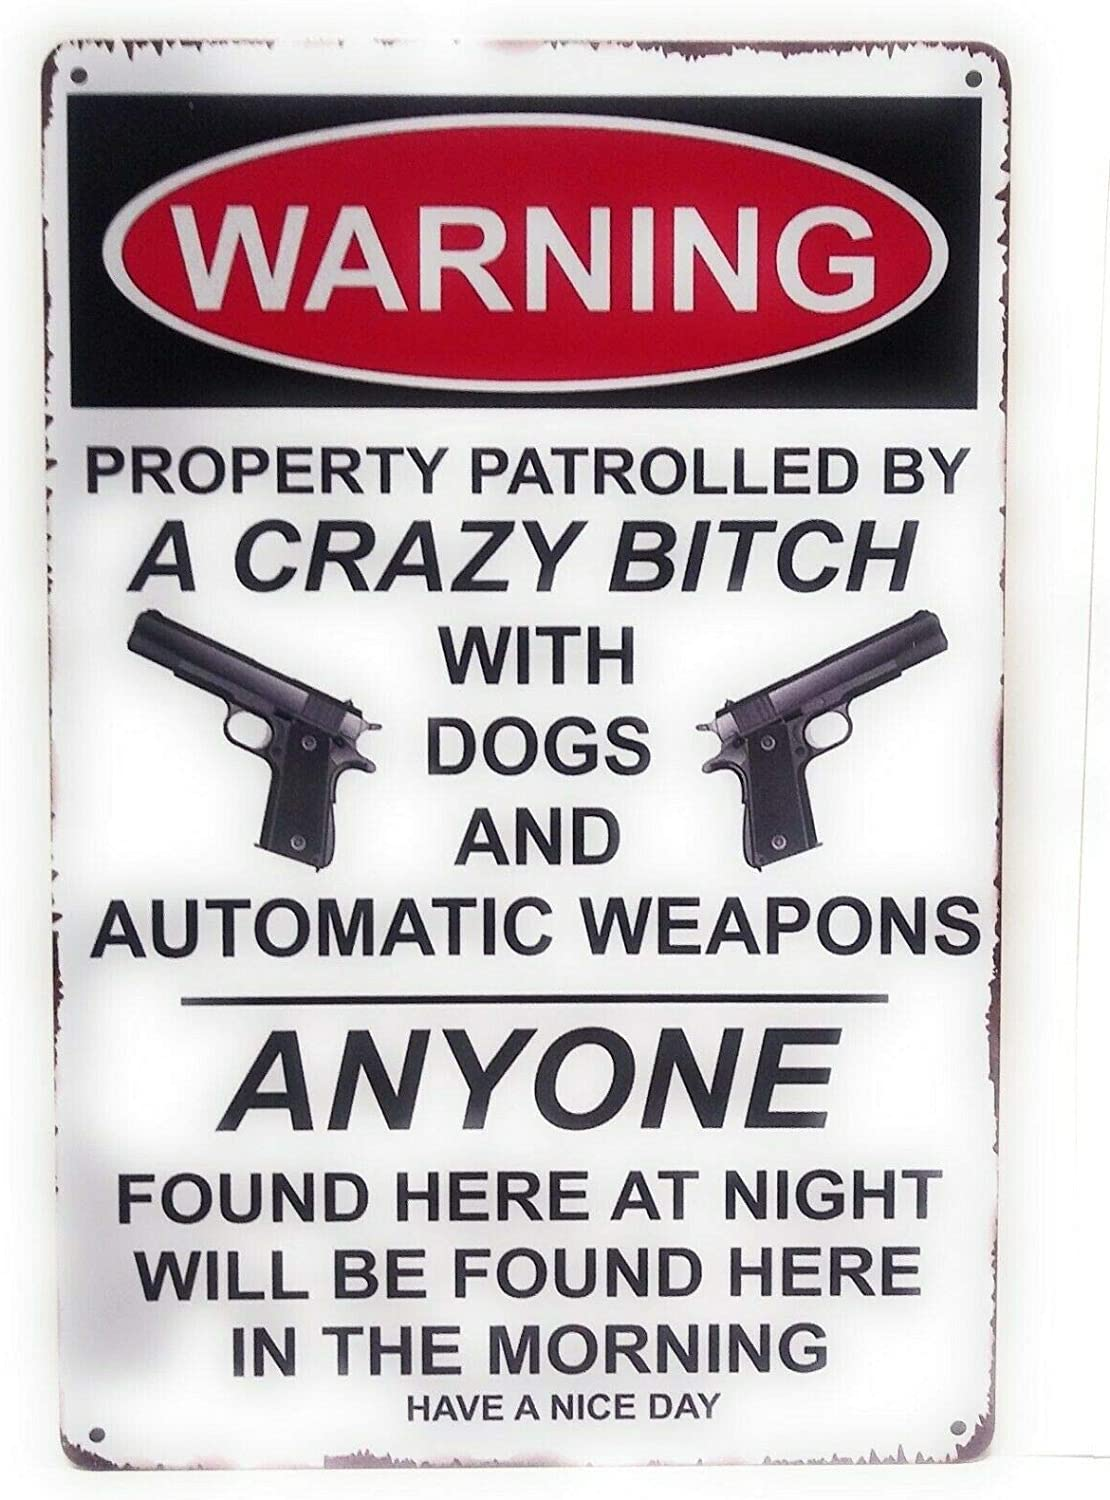 annekilly Metal Aluminum Plaque Sign Guns Warning No Tresspassing Property Patrolled by a Crazy Bitch with Dogs Tin Sign for Home Bar Kitchen Pub Wall Decor Signs 12x8inch